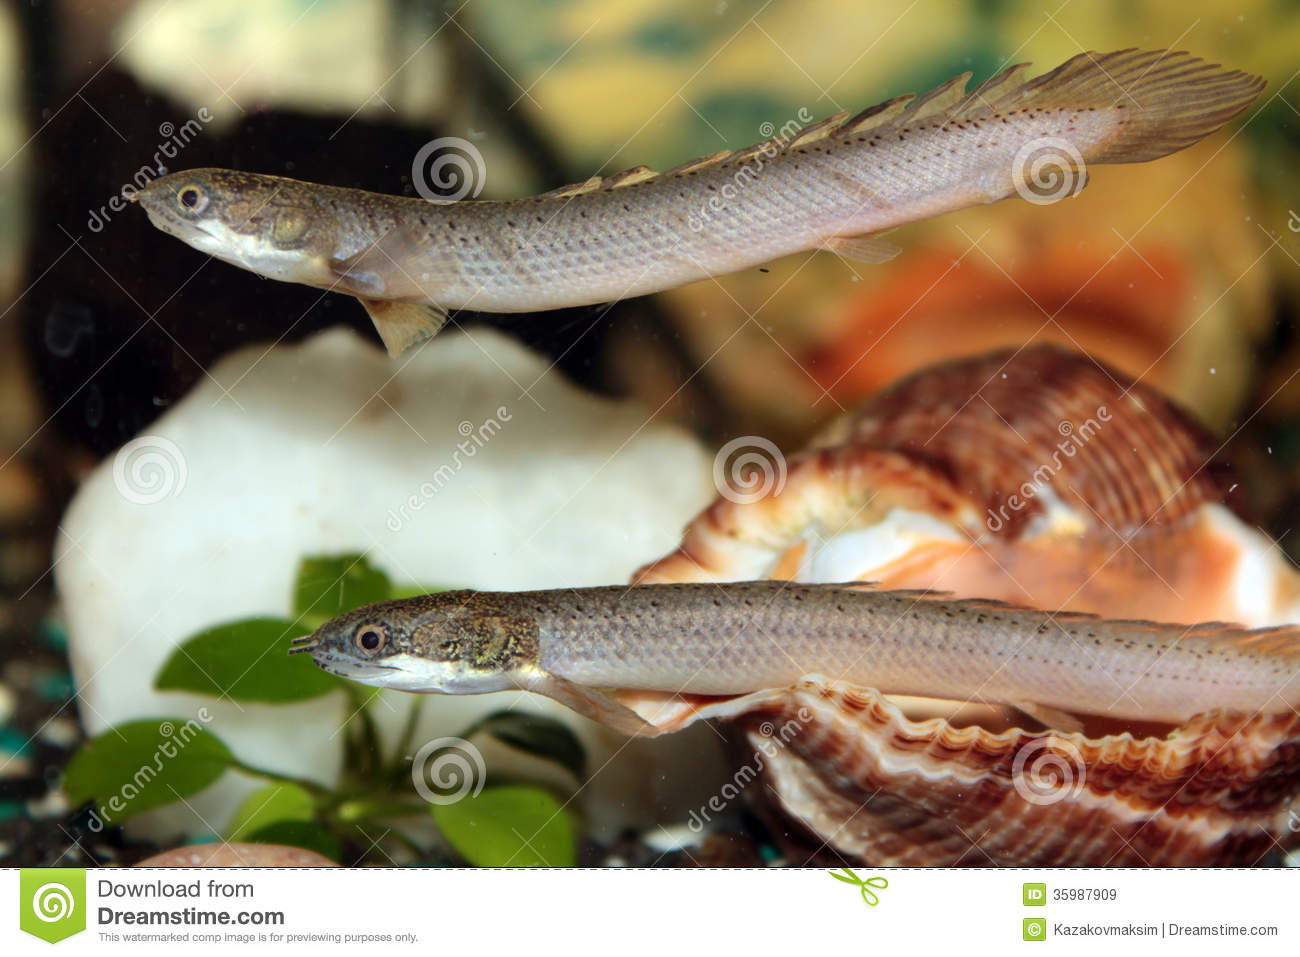 Freshwater aquarium fish photos - Image From Http Thumbs Dreamstime Com Z Senegal Bichir Aquarium Fish Freshwater 35987909 Jpg Aquarium Fish Pinterest